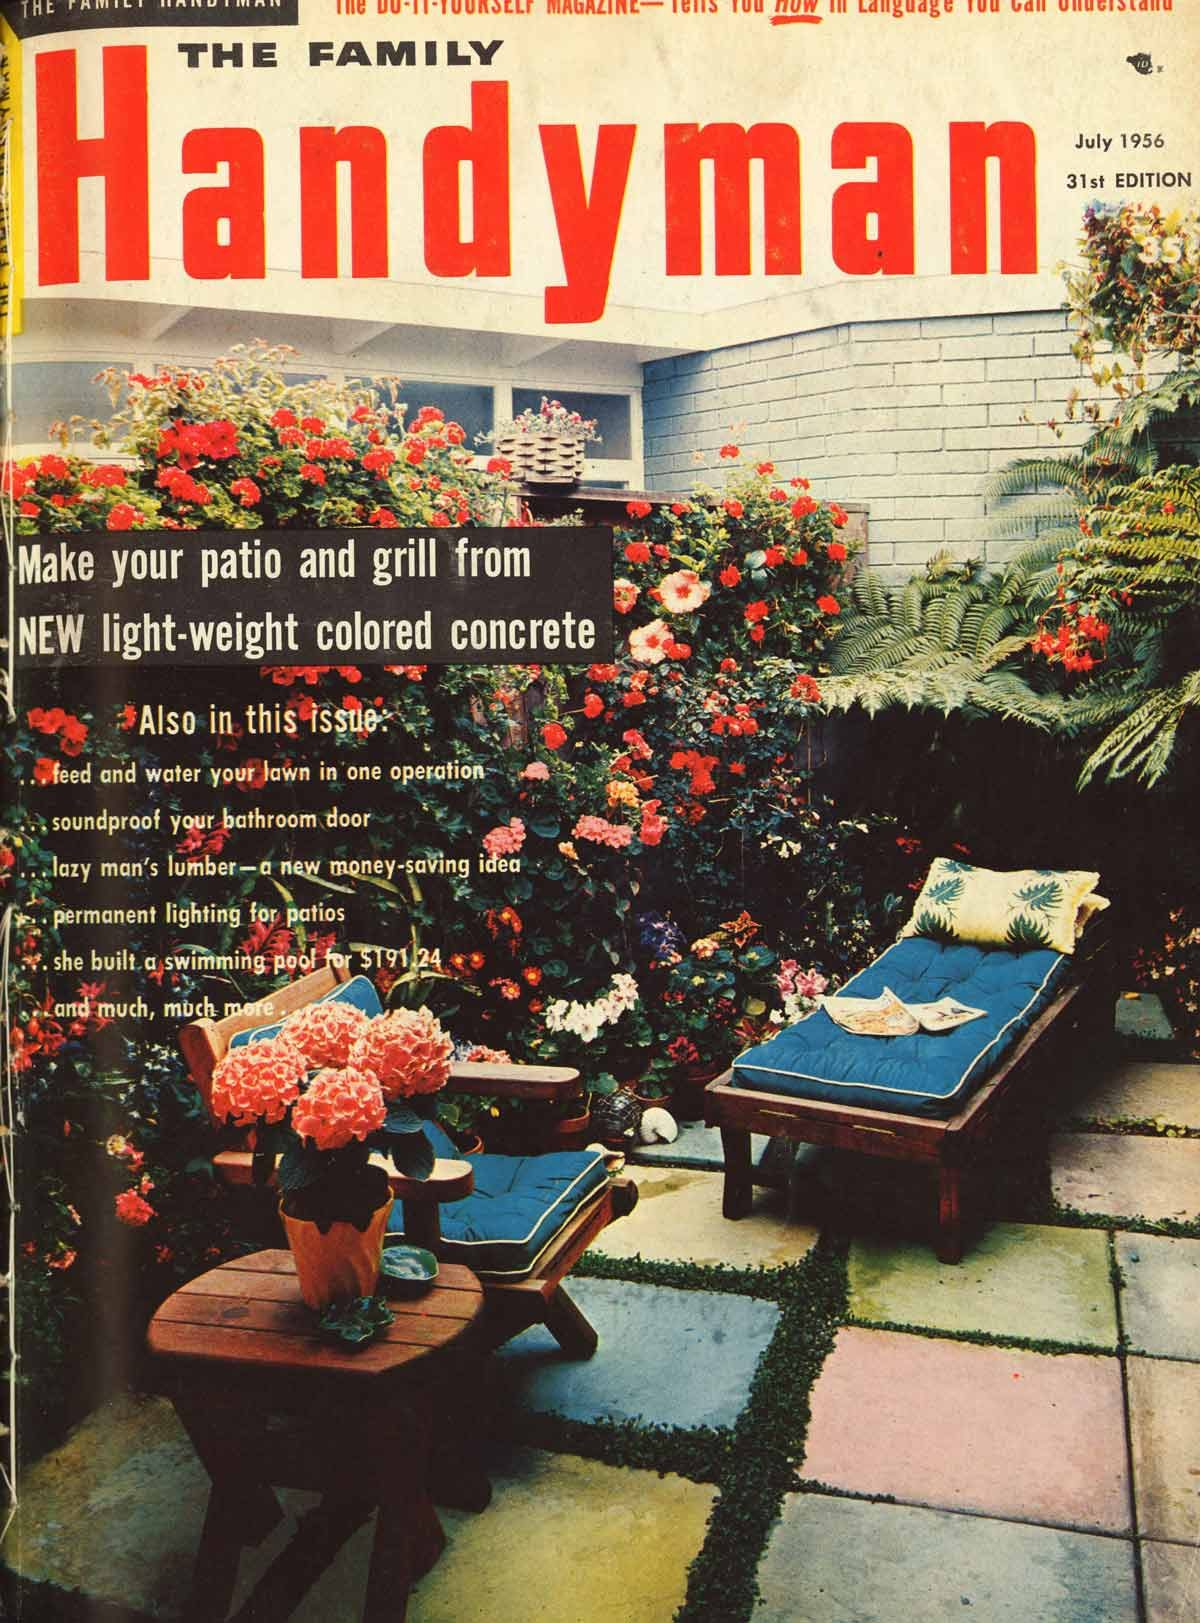 summer 1956 issue